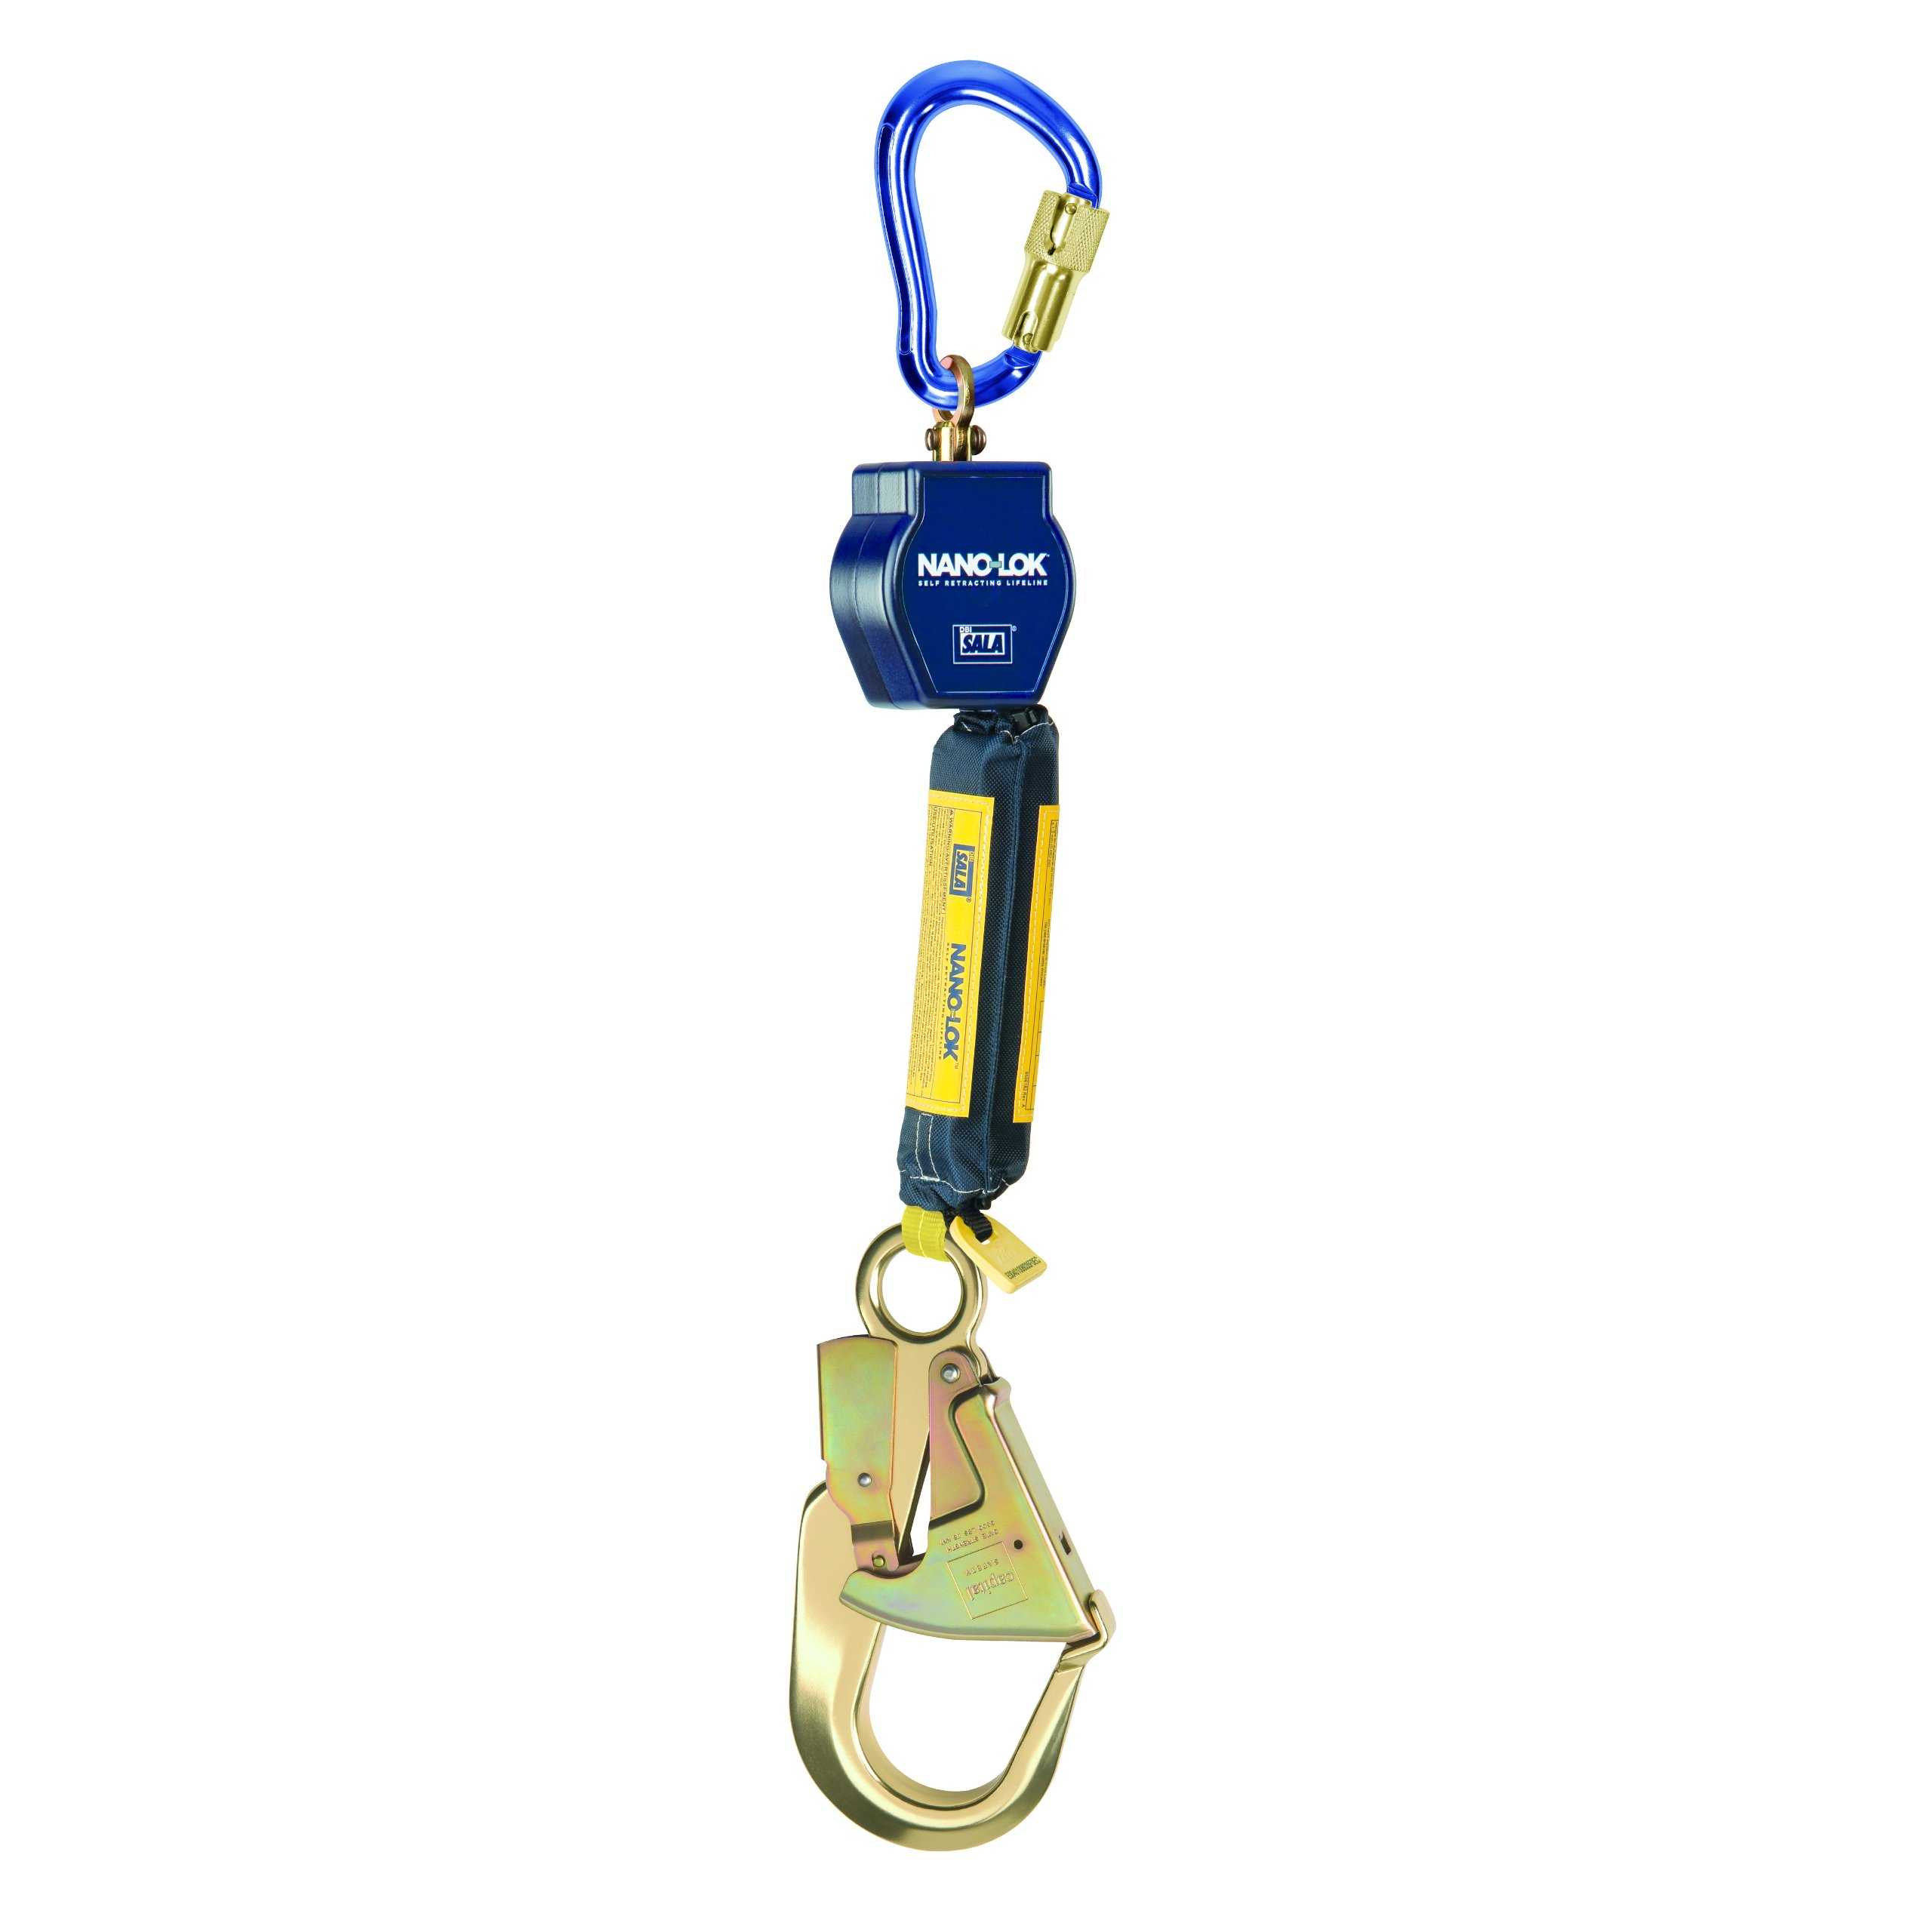 3M DBI-SALA Retrax 1241480 Shock Absorbing Lanyard, 6' 100 Percent Tie-Off Retractable Web and Snap Hooks At Each End, Navy/Yellow by 3M Personal Protective Equipment